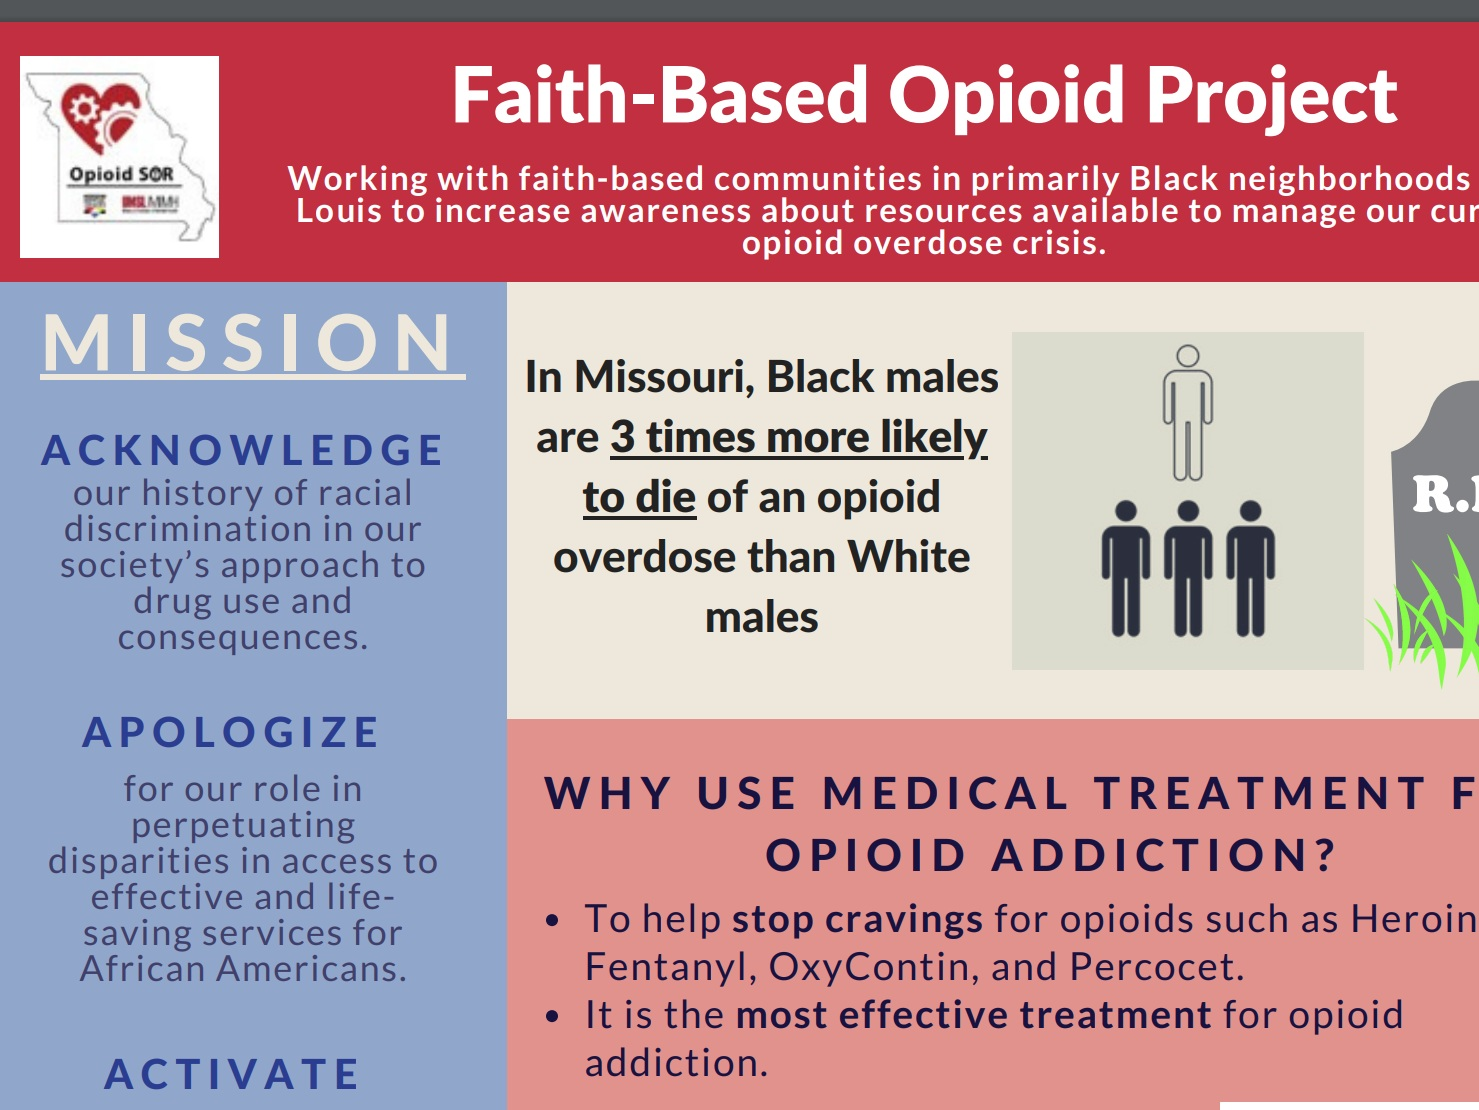 faith based opioid project - Increasing awareness, resources, and support in faith-based communities primarily in Black neighborhoods in Missouri.